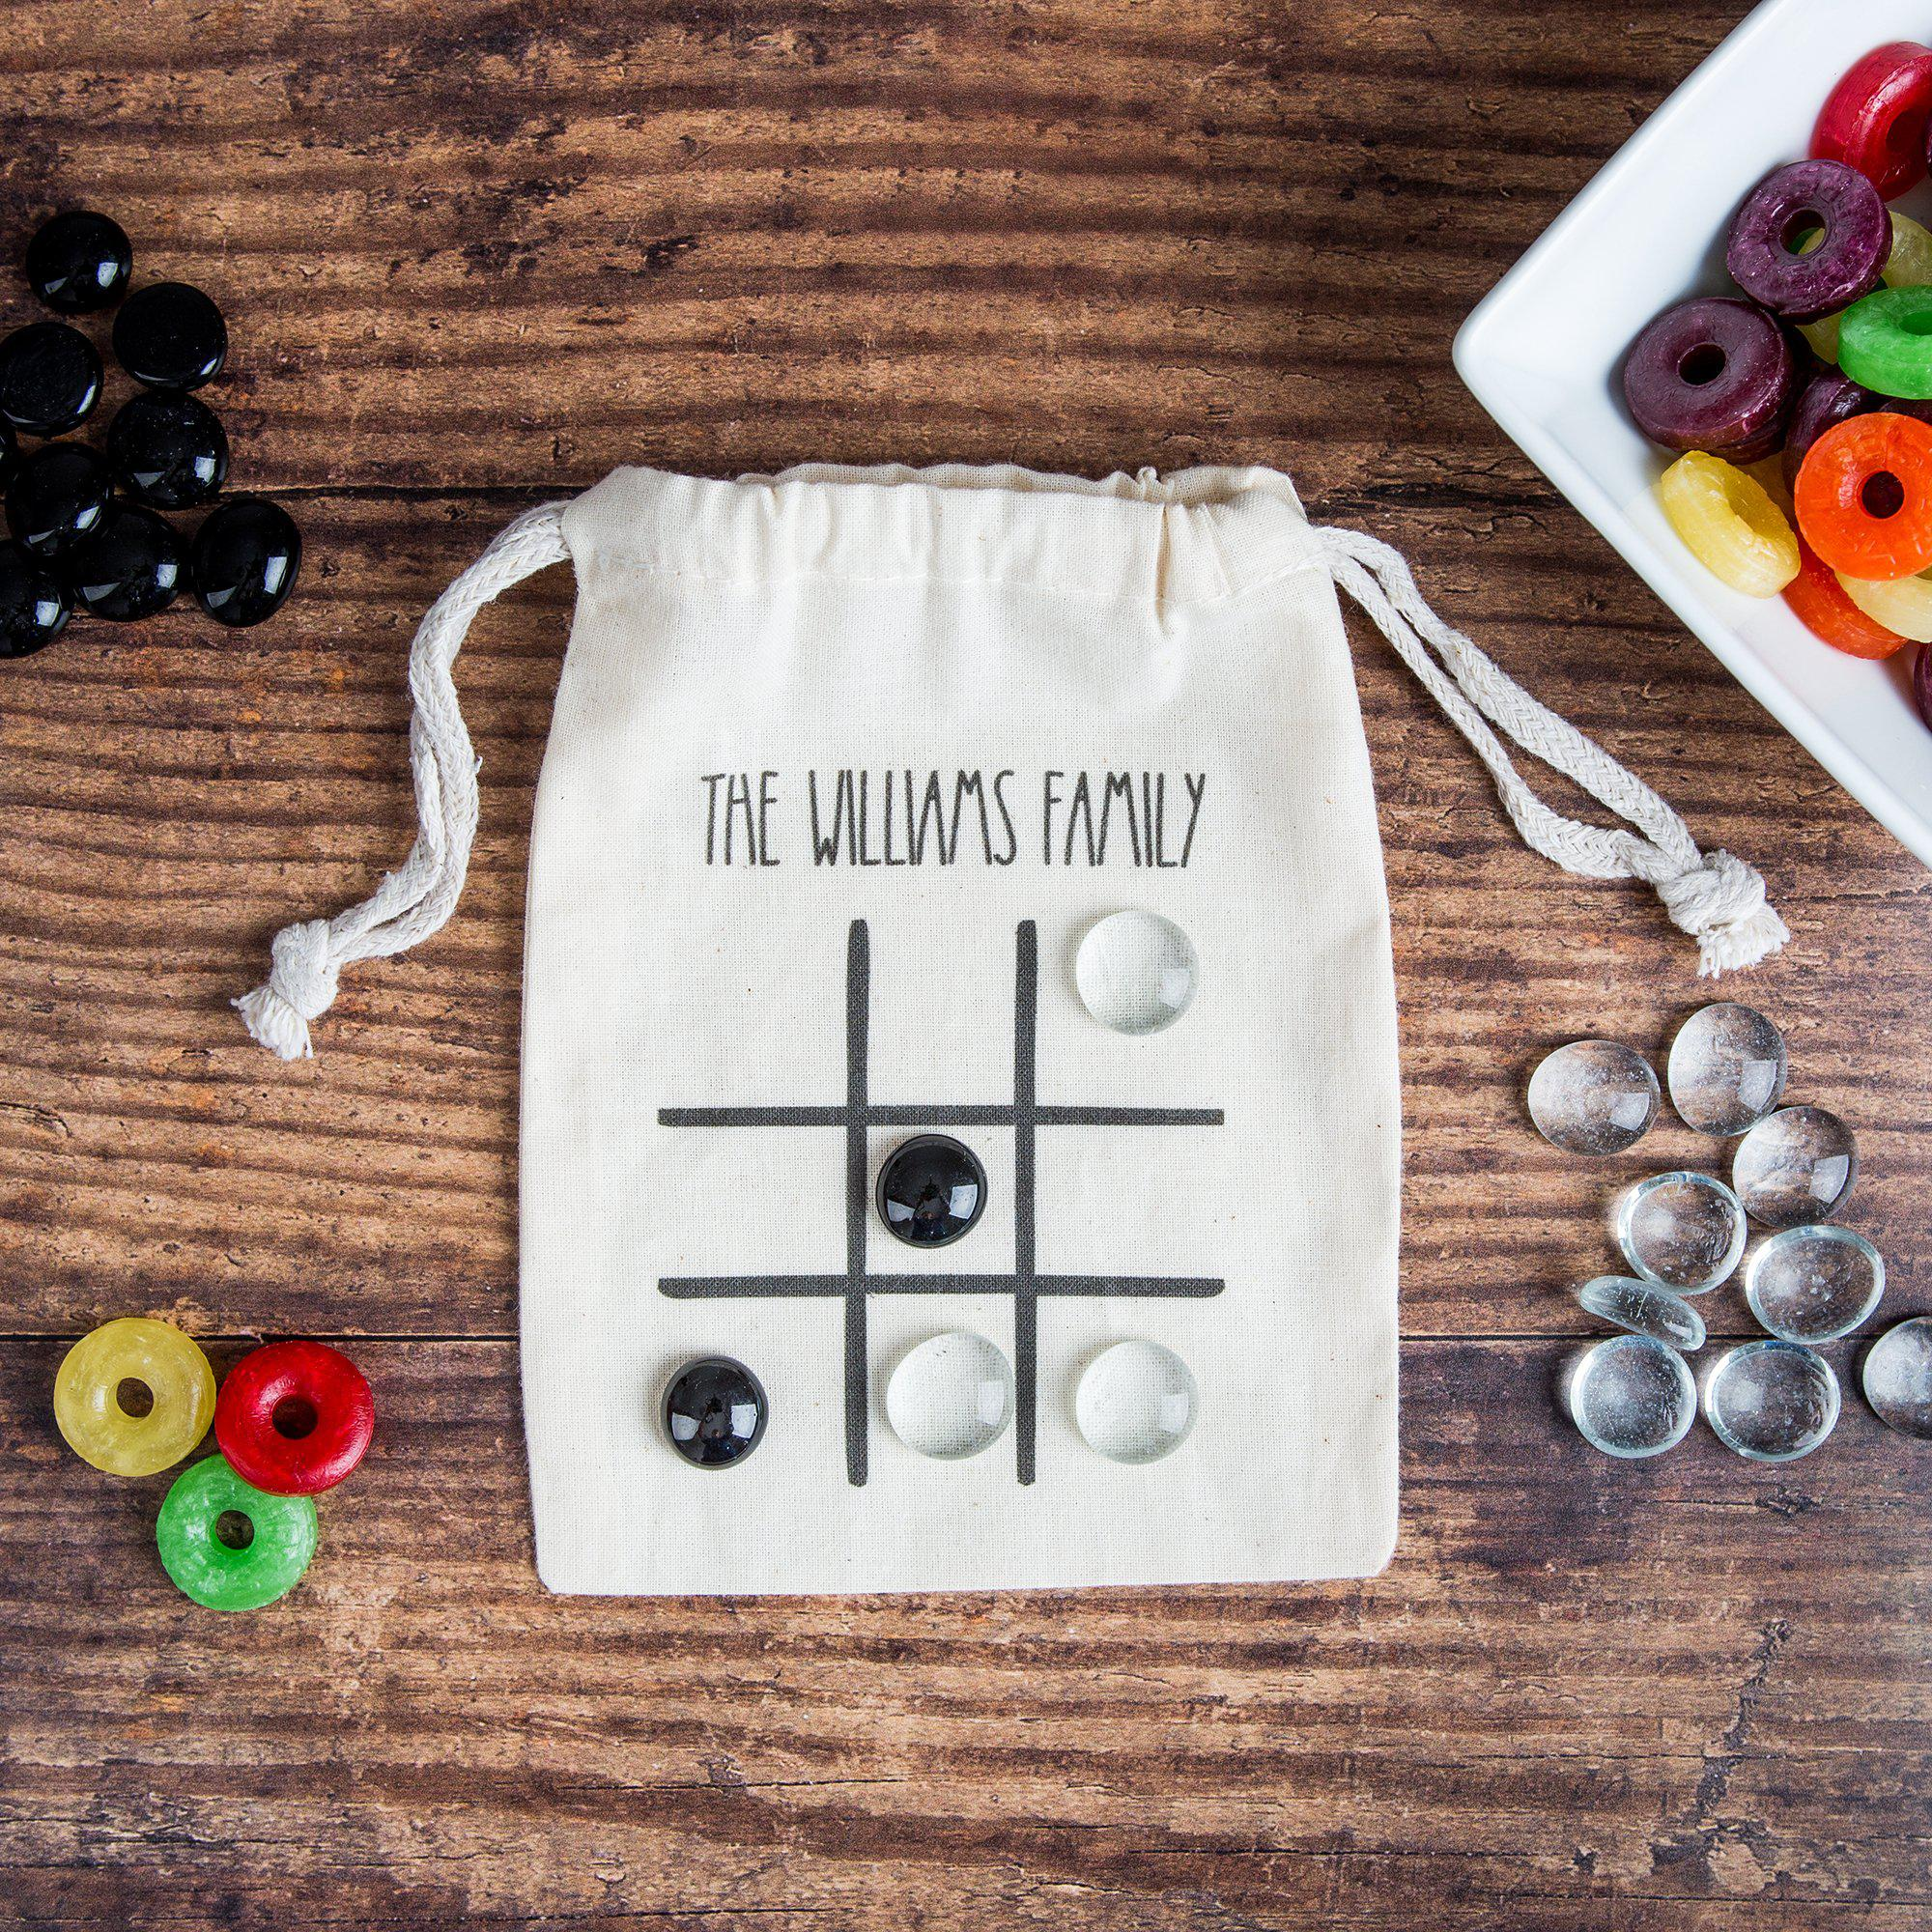 Personalized Tic-Tac-Toe Game in a Bag